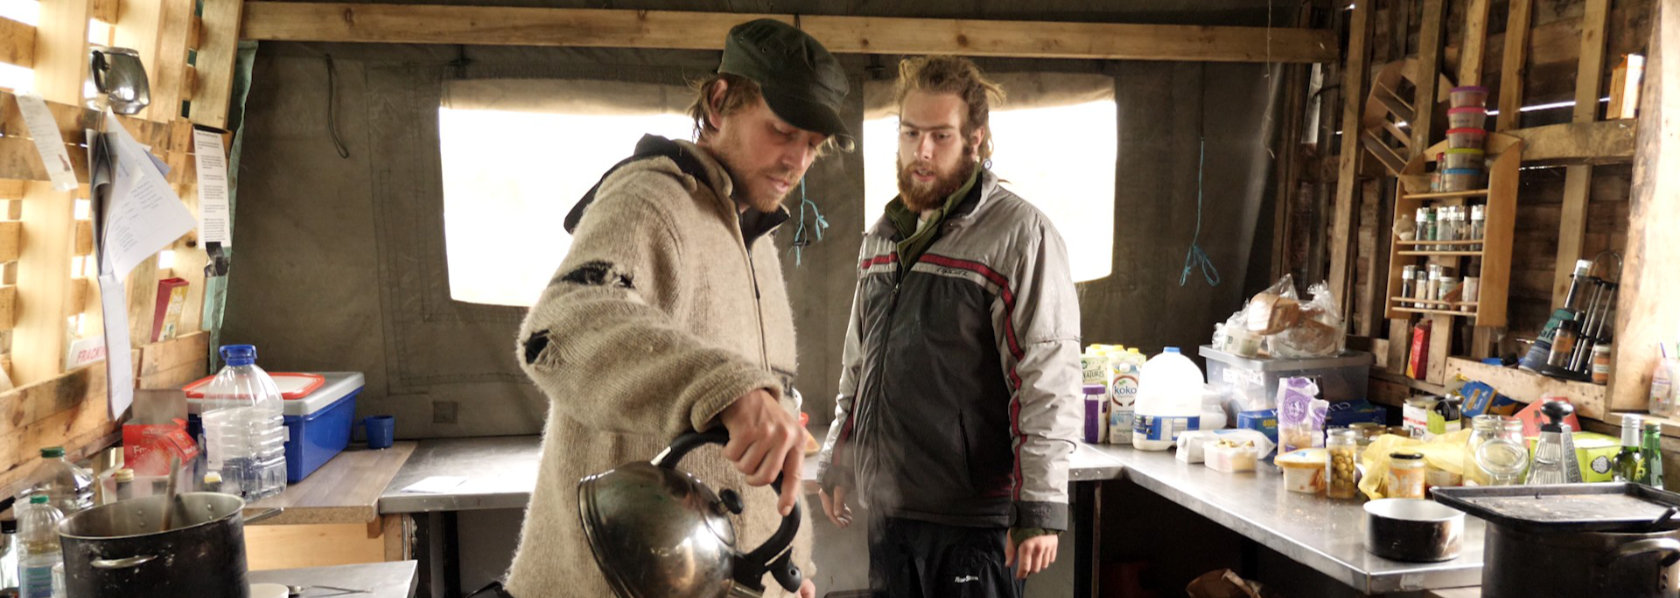 Two men making tea in a wooden cabin - The Way Out - THIS Buddhist Film Festival